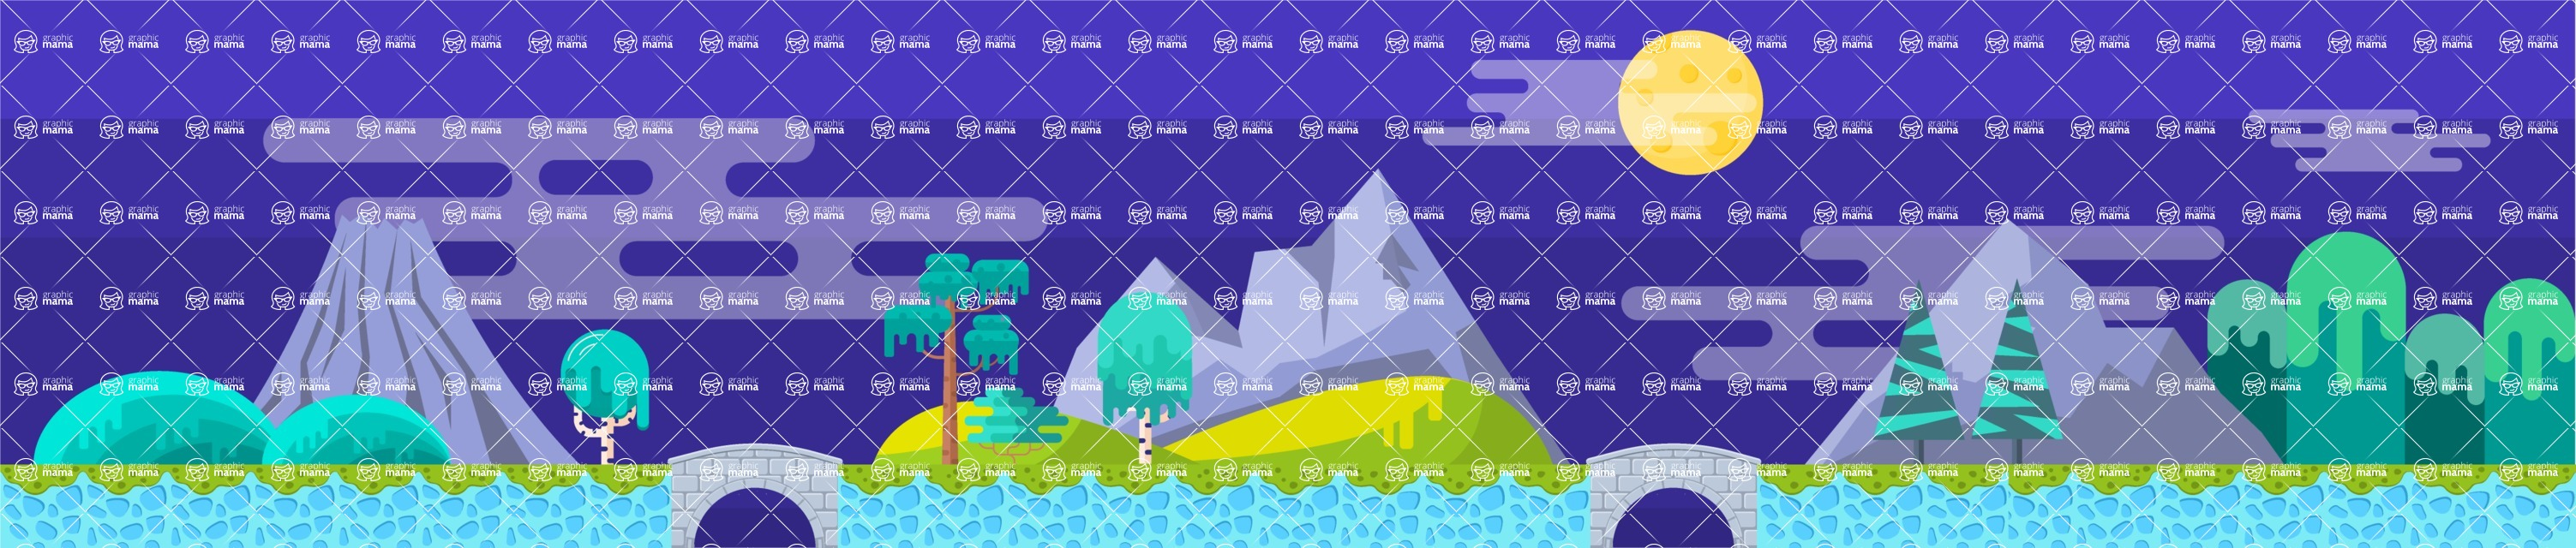 Background Vector Creation pack. A rich collection of flat vector elements for nature landscapes, city skylines, futuristic towns, fantastic scenes.  - Backgrounds 33